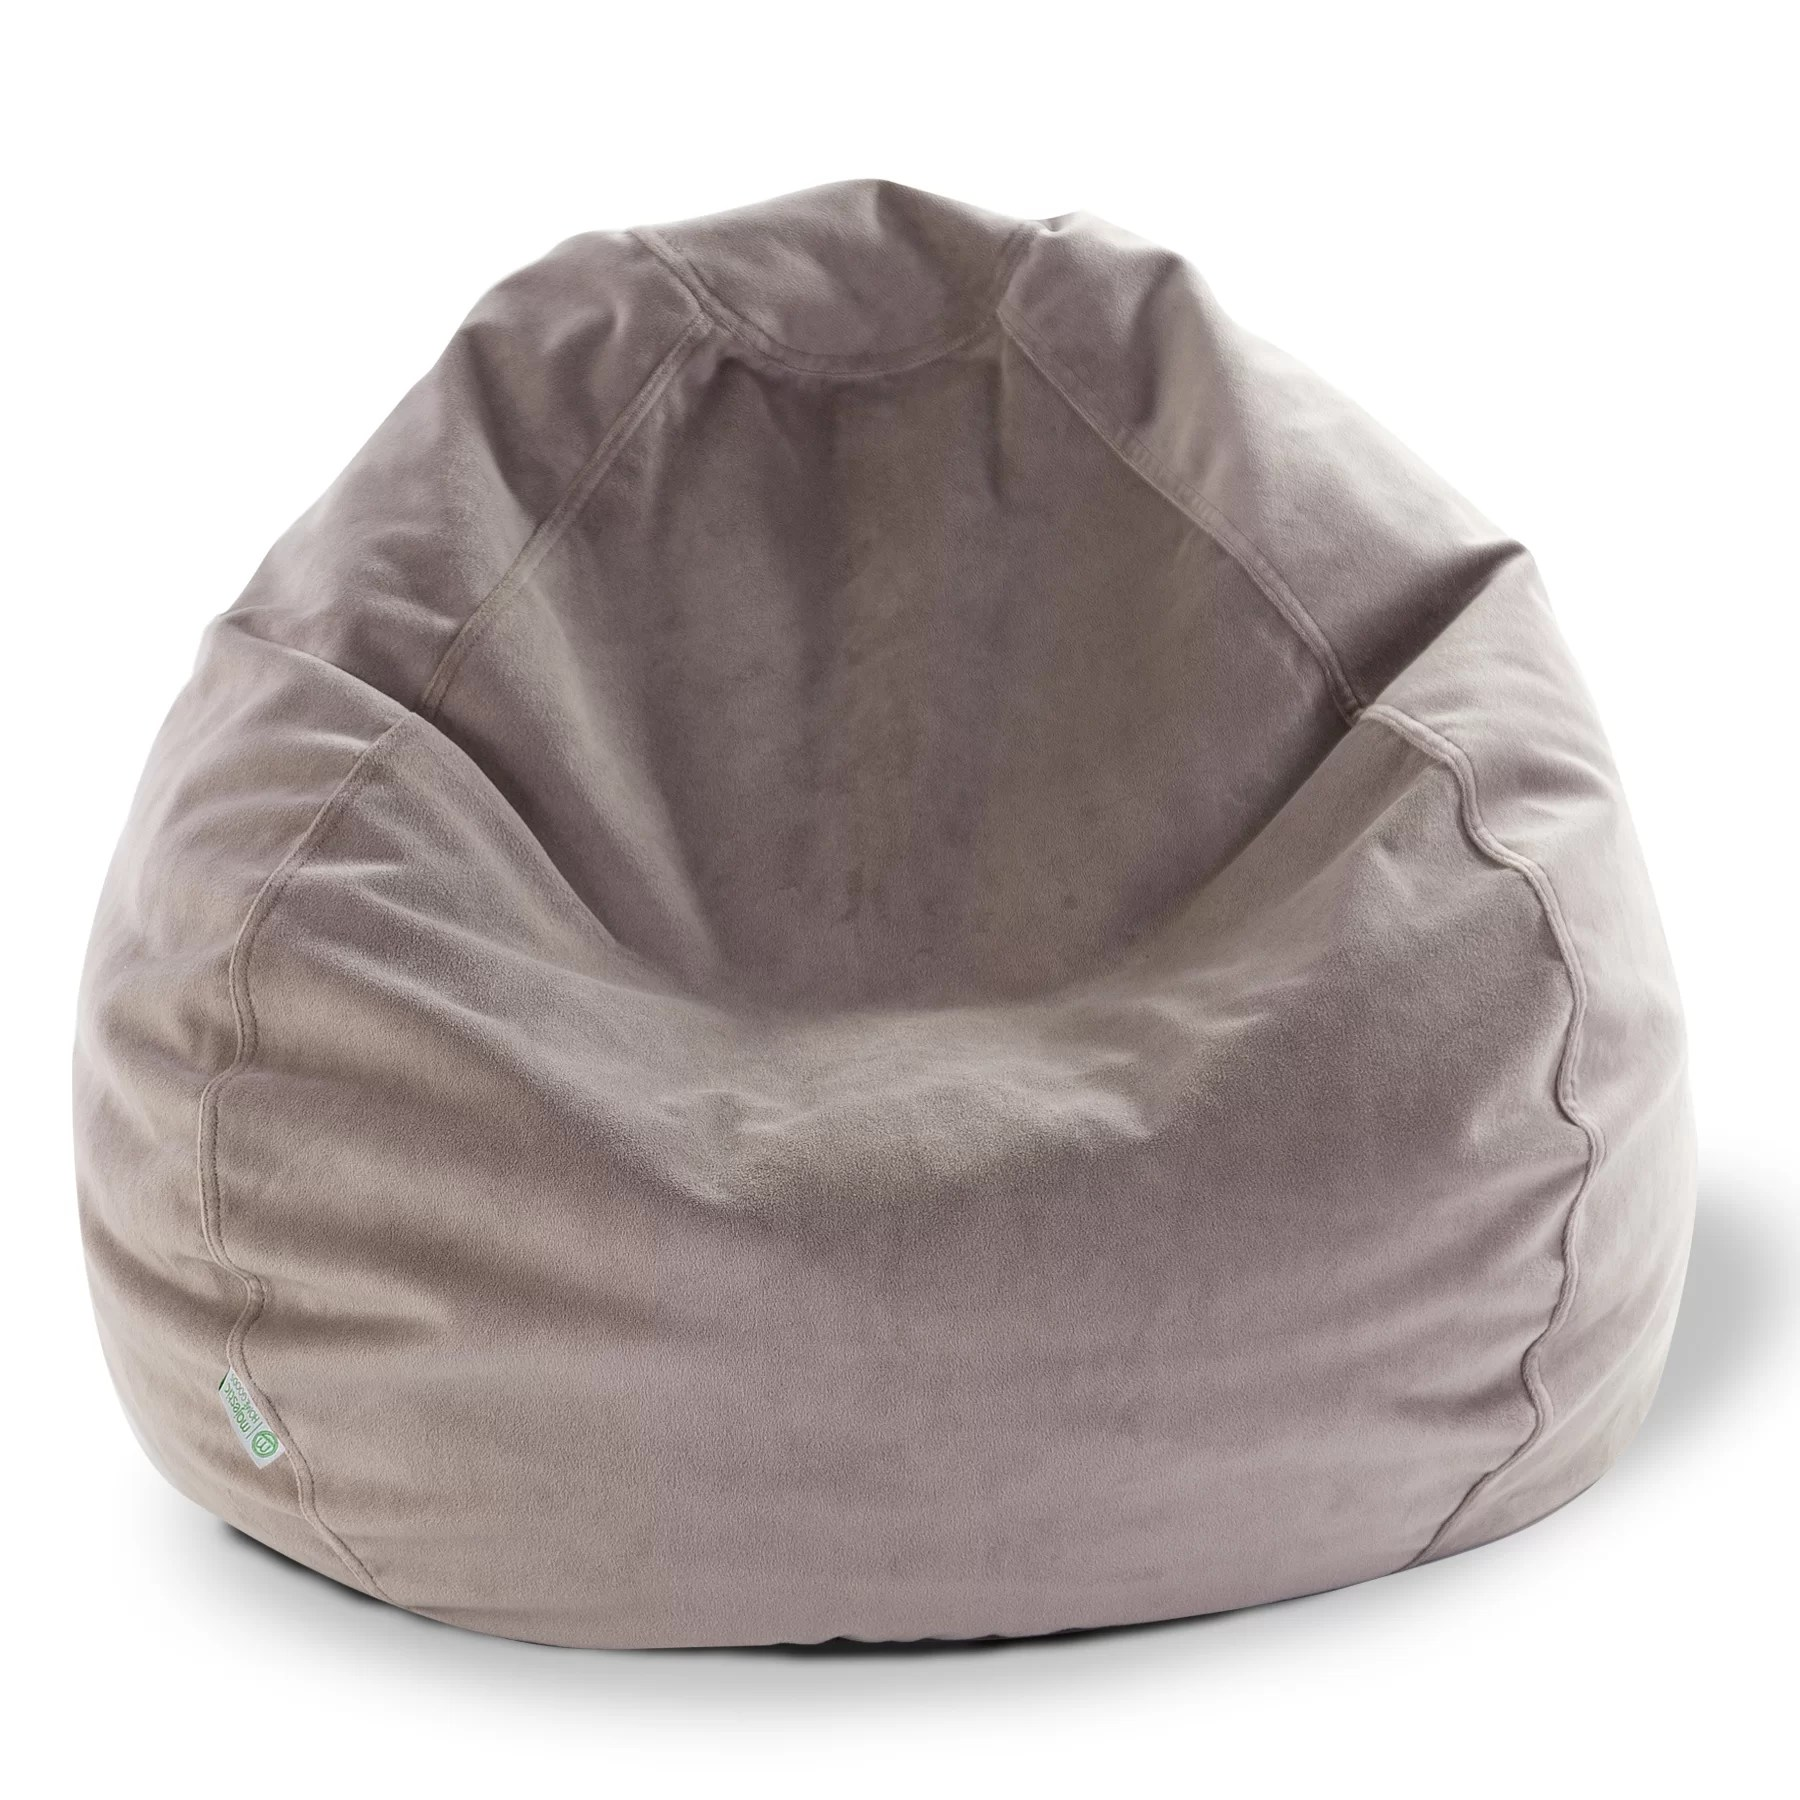 Beanbag Chairs Majestic Home Goods Bean Bag Chair And Reviews Wayfair